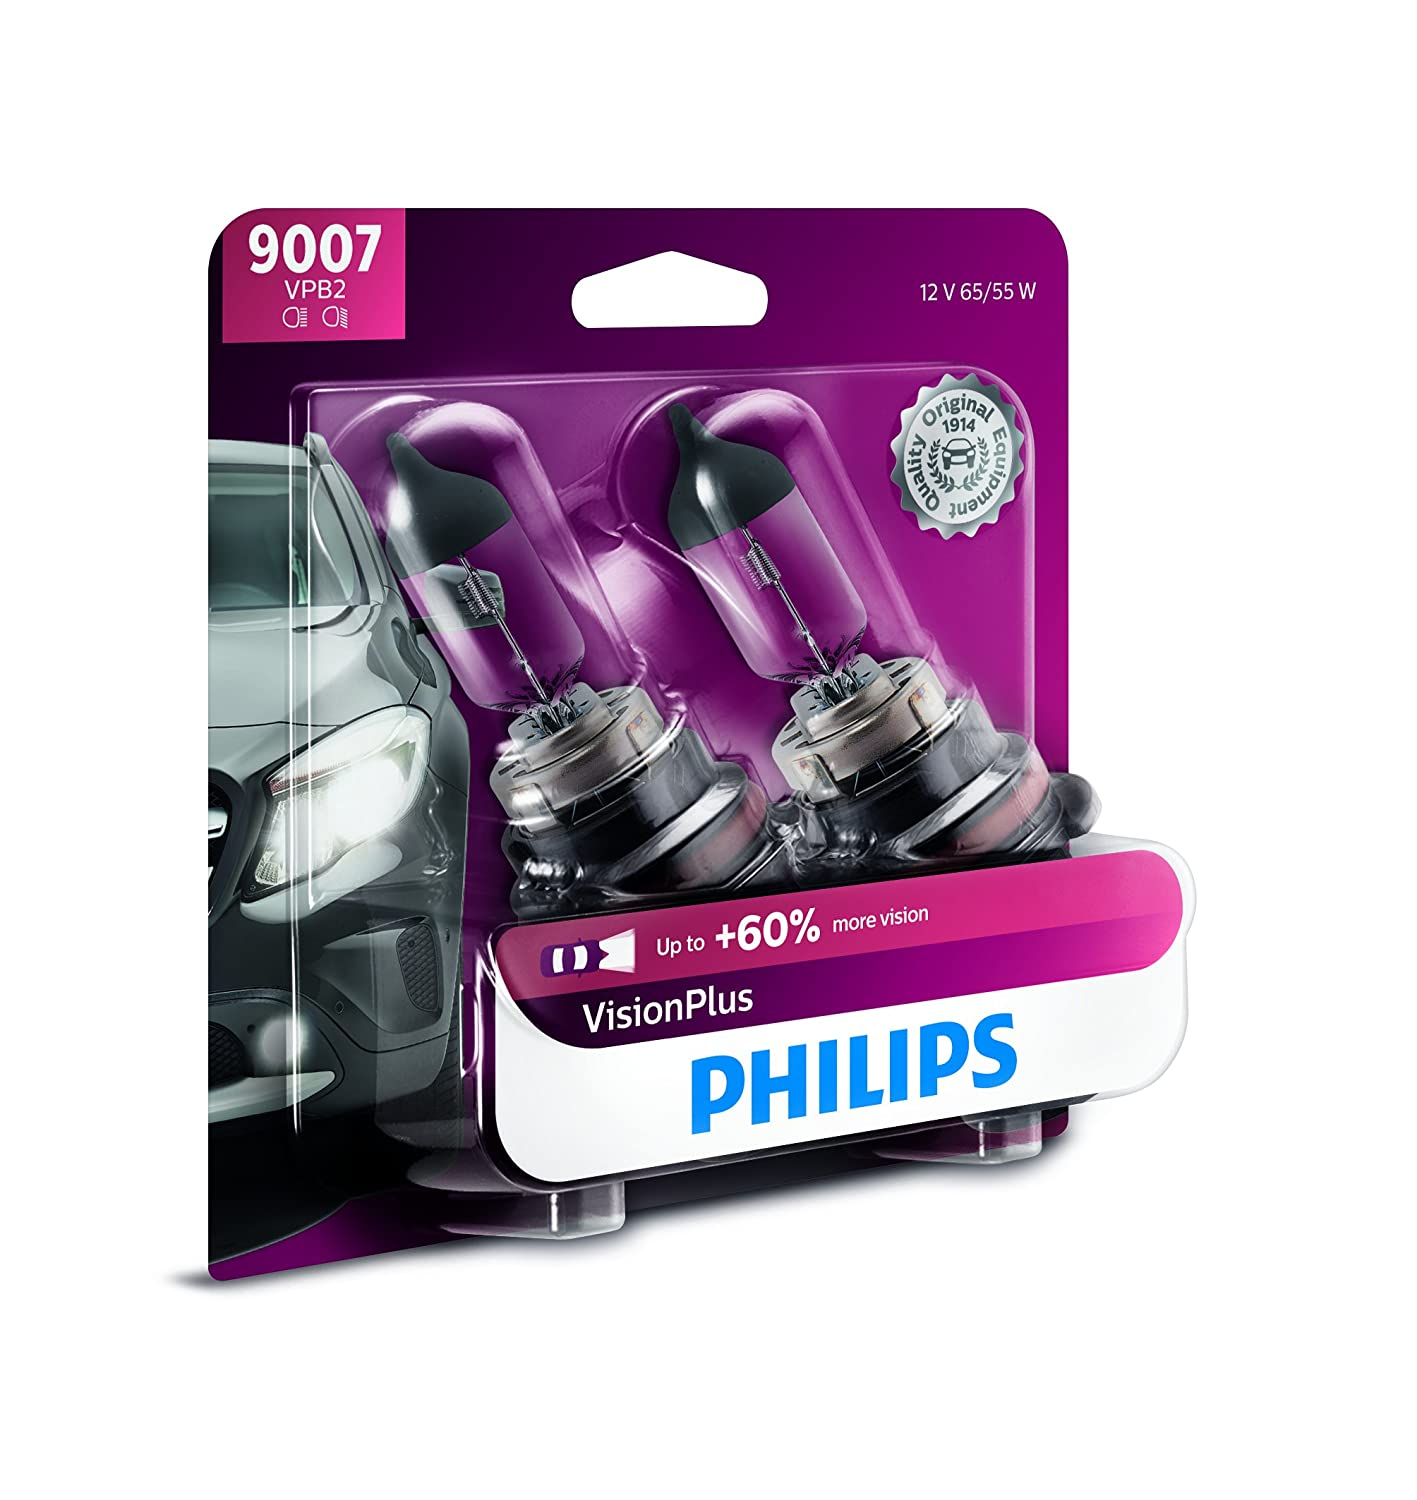 Philips 9007 VisionPlus Bulb, Pack of 2 9007VPB2